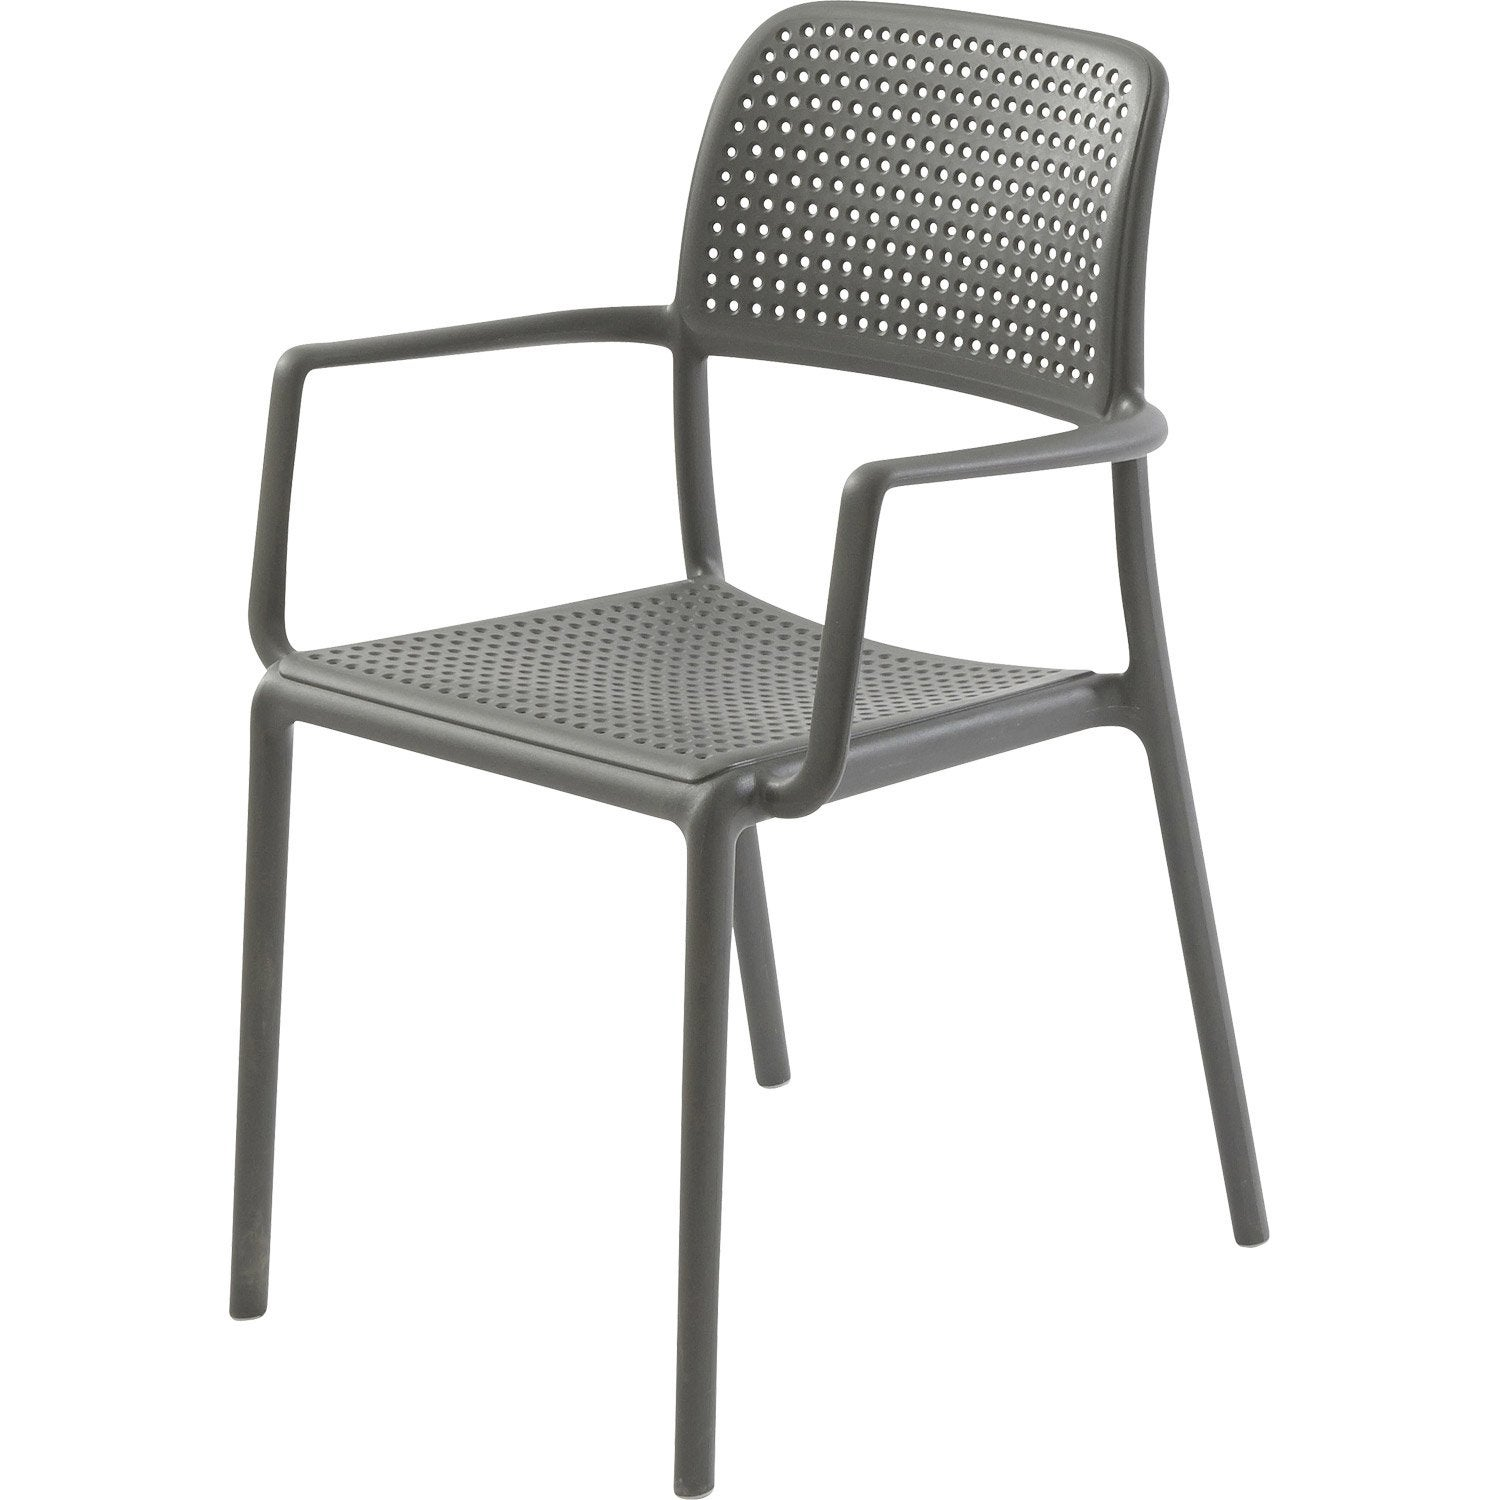 Salon de jardin gris anthracite leroy merlin for Mobilier de jardin leroy merlin